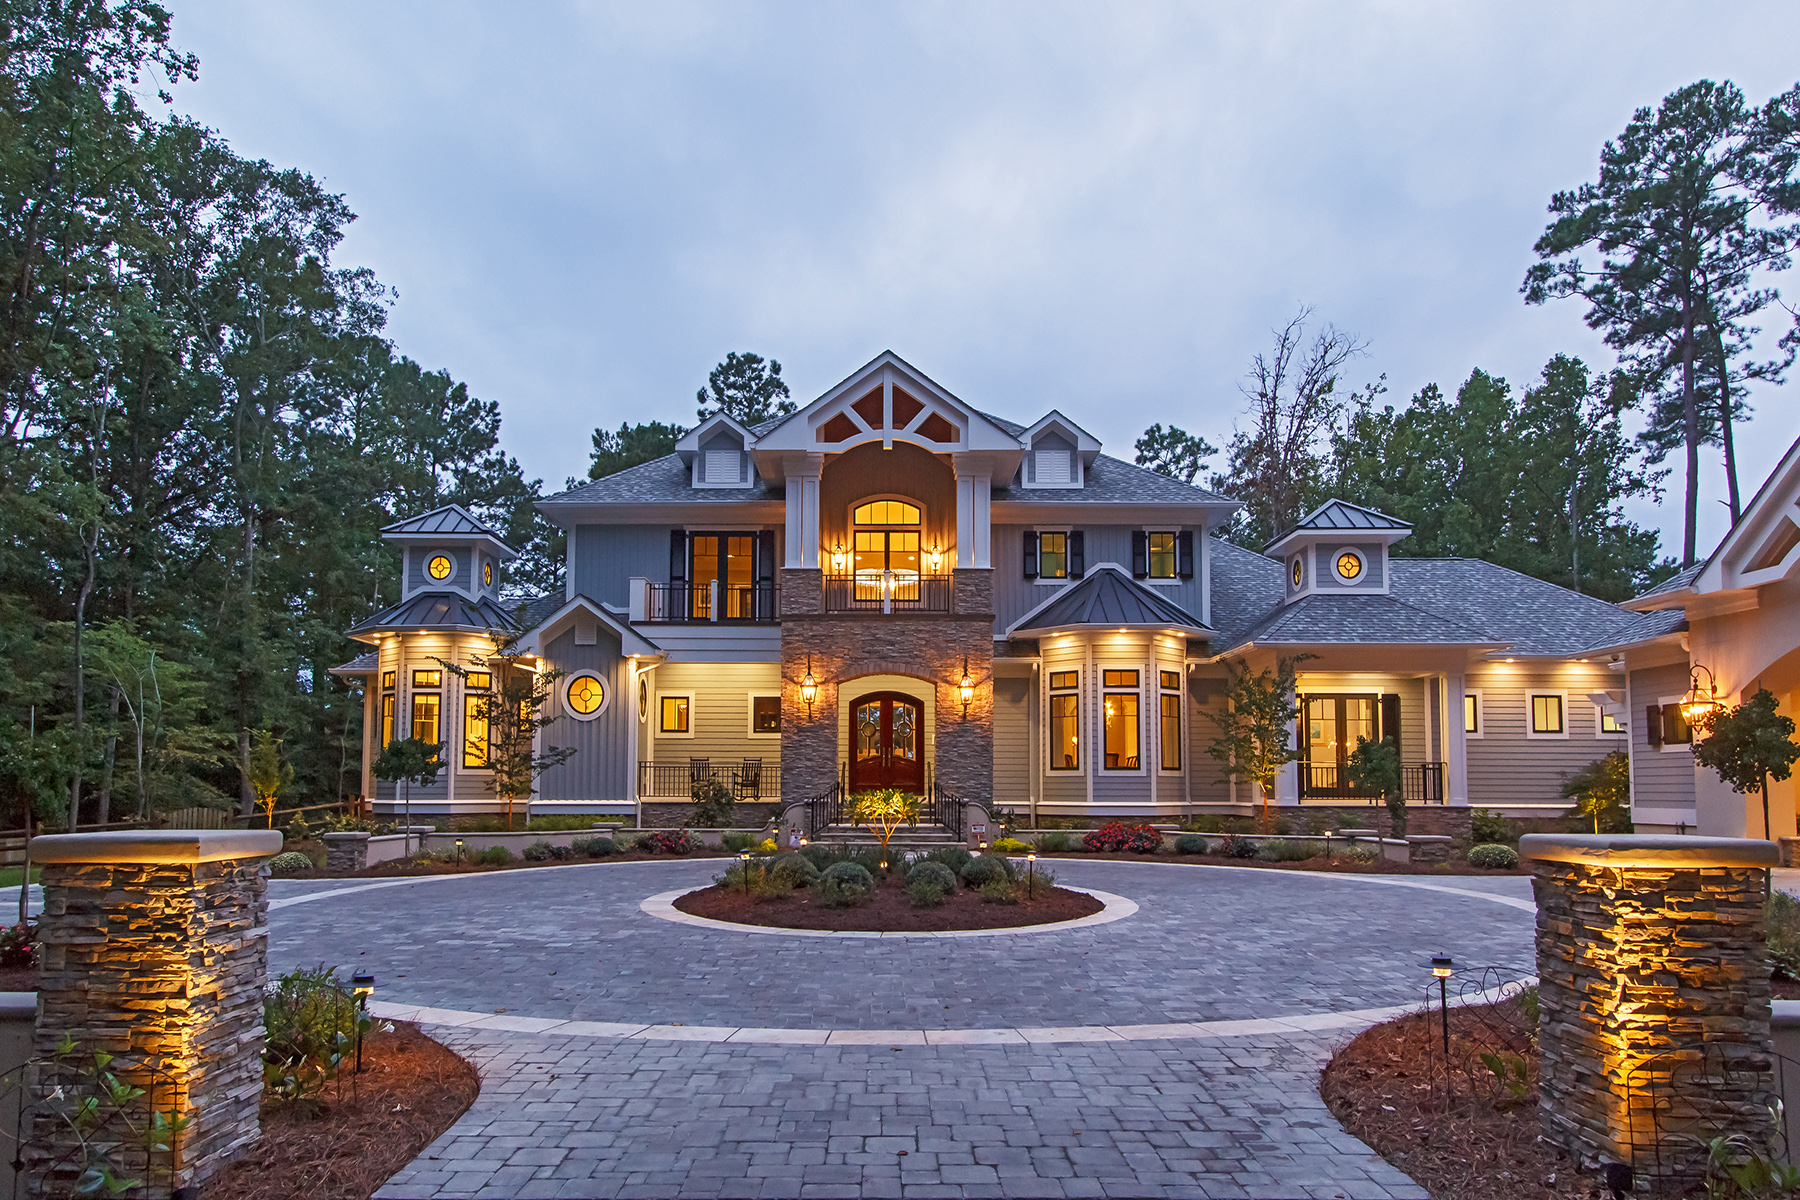 Coastal Inspired Low Country Weber Design Group Naples